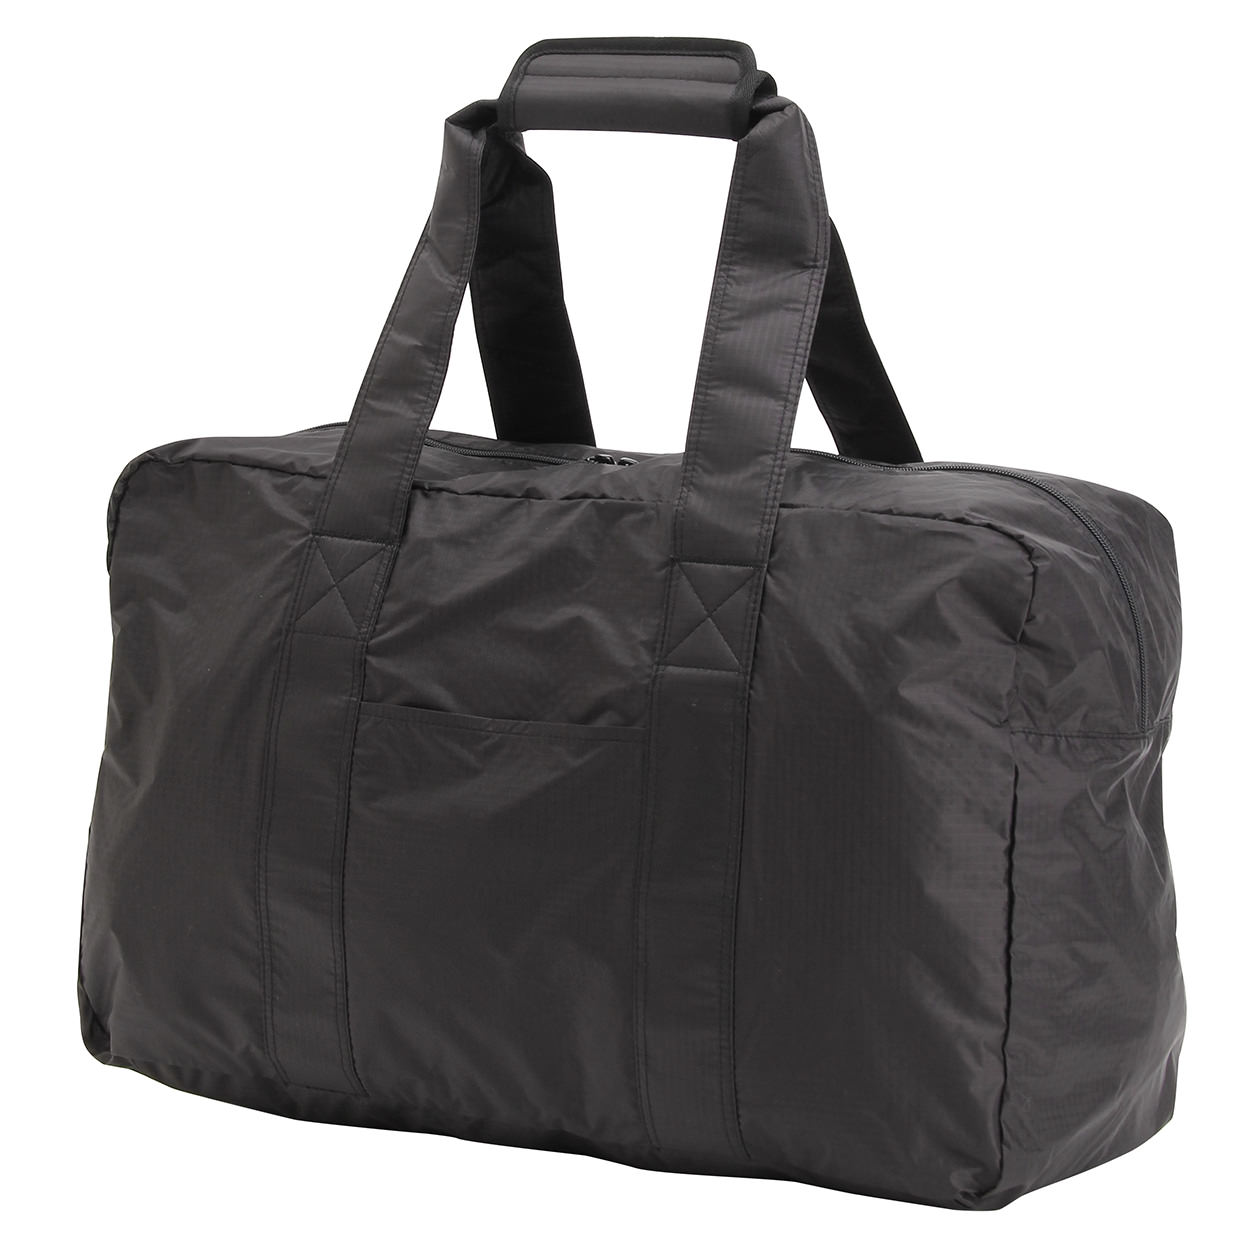 Valise Muji Paraglider Cloth Foldable Boston Bag Carry On Black Muji